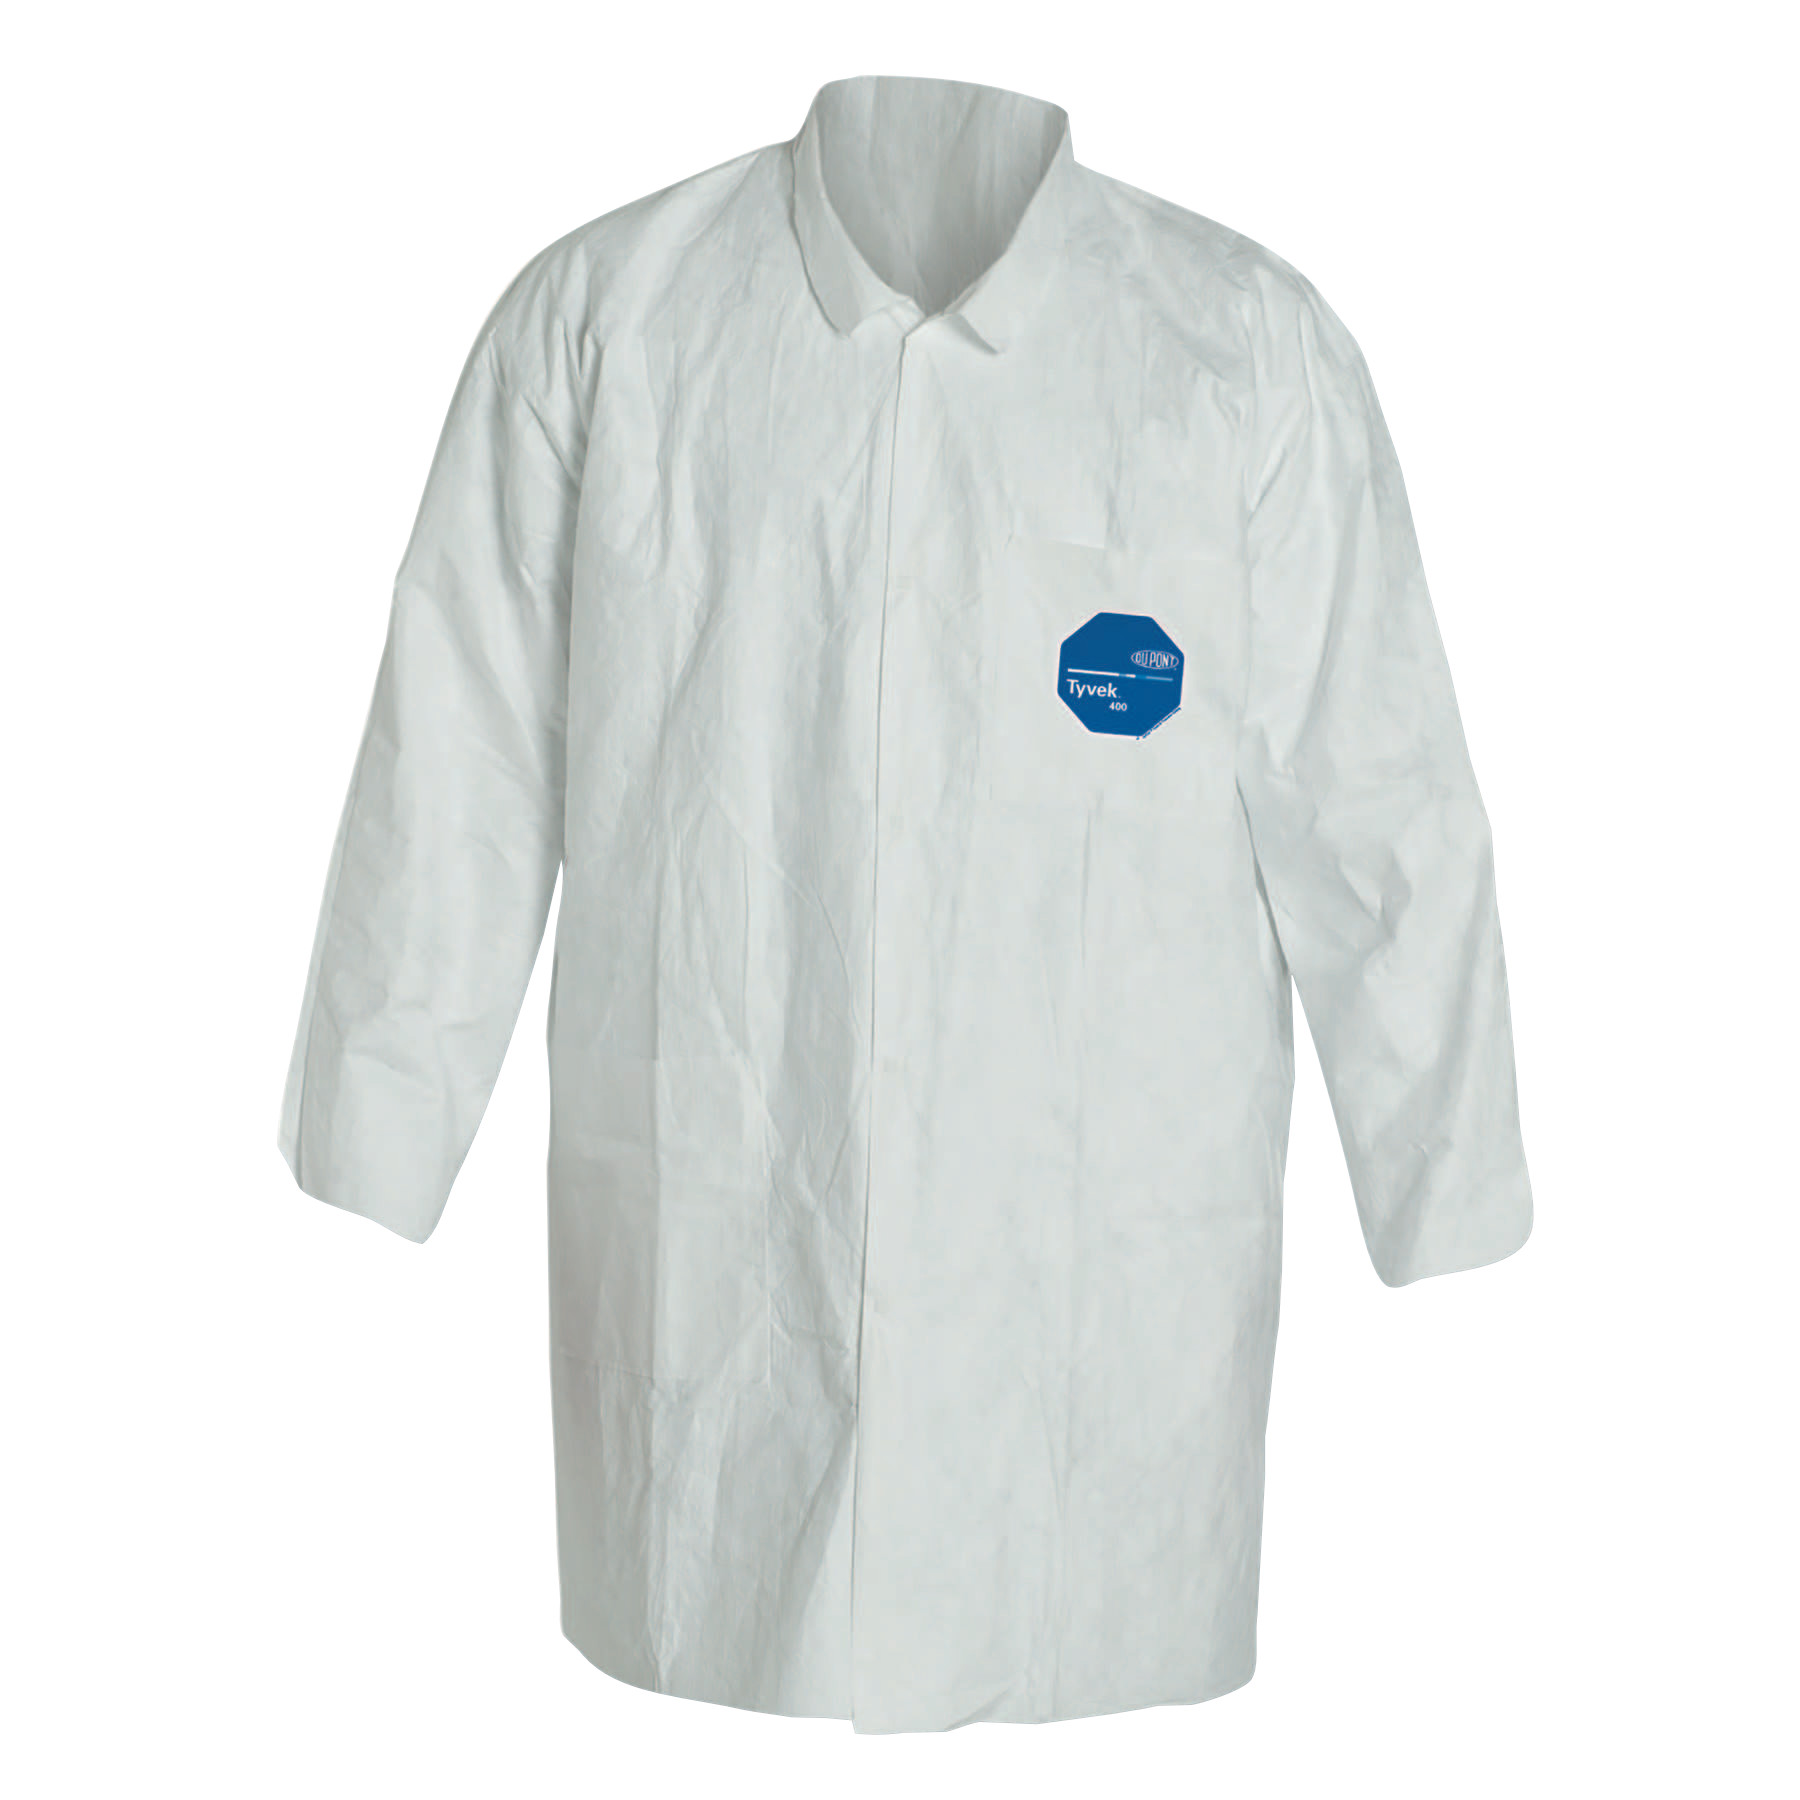 DuPont Tyvek Lab Coats Two Pockets, X-Large, Tyvek